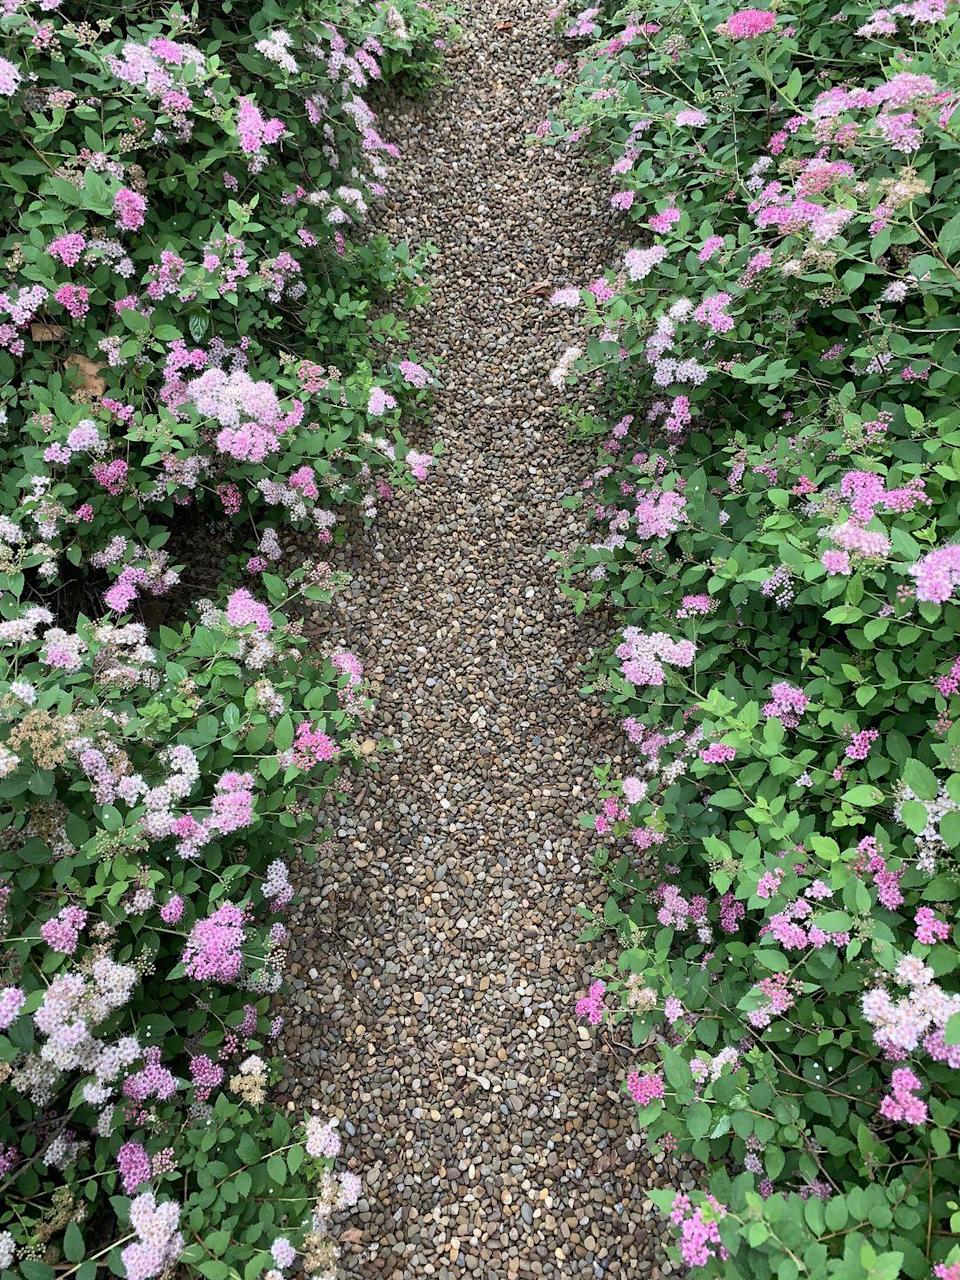 """<p>When it comes to paths and patios, gravel is a much more affordable surface than paving. To lay it in place; mark out the area, then scrape away loose soil or grass, pin down a permeable membrane to stop the weeds coming through and spread the gravel over it. Aim for a depth of 2.5cm. You can choose a pale gravel, like Honey Stone, to contrast with your lawn and planting. A large bag will cover around 20 sq metres.</p><p><strong>• </strong>Head to <a href=""""https://go.redirectingat.com?id=127X1599956&url=https%3A%2F%2Fwww.homebase.co.uk%2Fgarden-outdoor%2Ffencing-decking-landscaping%2Fdecorative-stone-gravel-chippings.list&sref=https%3A%2F%2Fwww.redonline.co.uk%2Finteriors%2Feditors_choice%2Fg35933369%2Fgarden-ideas-on-a-budget%2F"""" rel=""""nofollow noopener"""" target=""""_blank"""" data-ylk=""""slk:Homebase"""" class=""""link rapid-noclick-resp"""">Homebase</a>, <a href=""""https://go.redirectingat.com?id=127X1599956&url=https%3A%2F%2Fwww.diy.com%2Fdepartments%2Foutdoor-garden%2Fstone-gravel-chippings%2FDIY592562.cat%23Icamp%3DNav_Garden_DIY592562&sref=https%3A%2F%2Fwww.redonline.co.uk%2Finteriors%2Feditors_choice%2Fg35933369%2Fgarden-ideas-on-a-budget%2F"""" rel=""""nofollow noopener"""" target=""""_blank"""" data-ylk=""""slk:B&Q"""" class=""""link rapid-noclick-resp"""">B&Q</a> or <a href=""""https://go.redirectingat.com?id=127X1599956&url=https%3A%2F%2Fwww.wickes.co.uk%2F&sref=https%3A%2F%2Fwww.redonline.co.uk%2Finteriors%2Feditors_choice%2Fg35933369%2Fgarden-ideas-on-a-budget%2F"""" rel=""""nofollow noopener"""" target=""""_blank"""" data-ylk=""""slk:Wickes"""" class=""""link rapid-noclick-resp"""">Wickes</a> for all your gravel needs!<strong><br><br><br></strong></p>"""